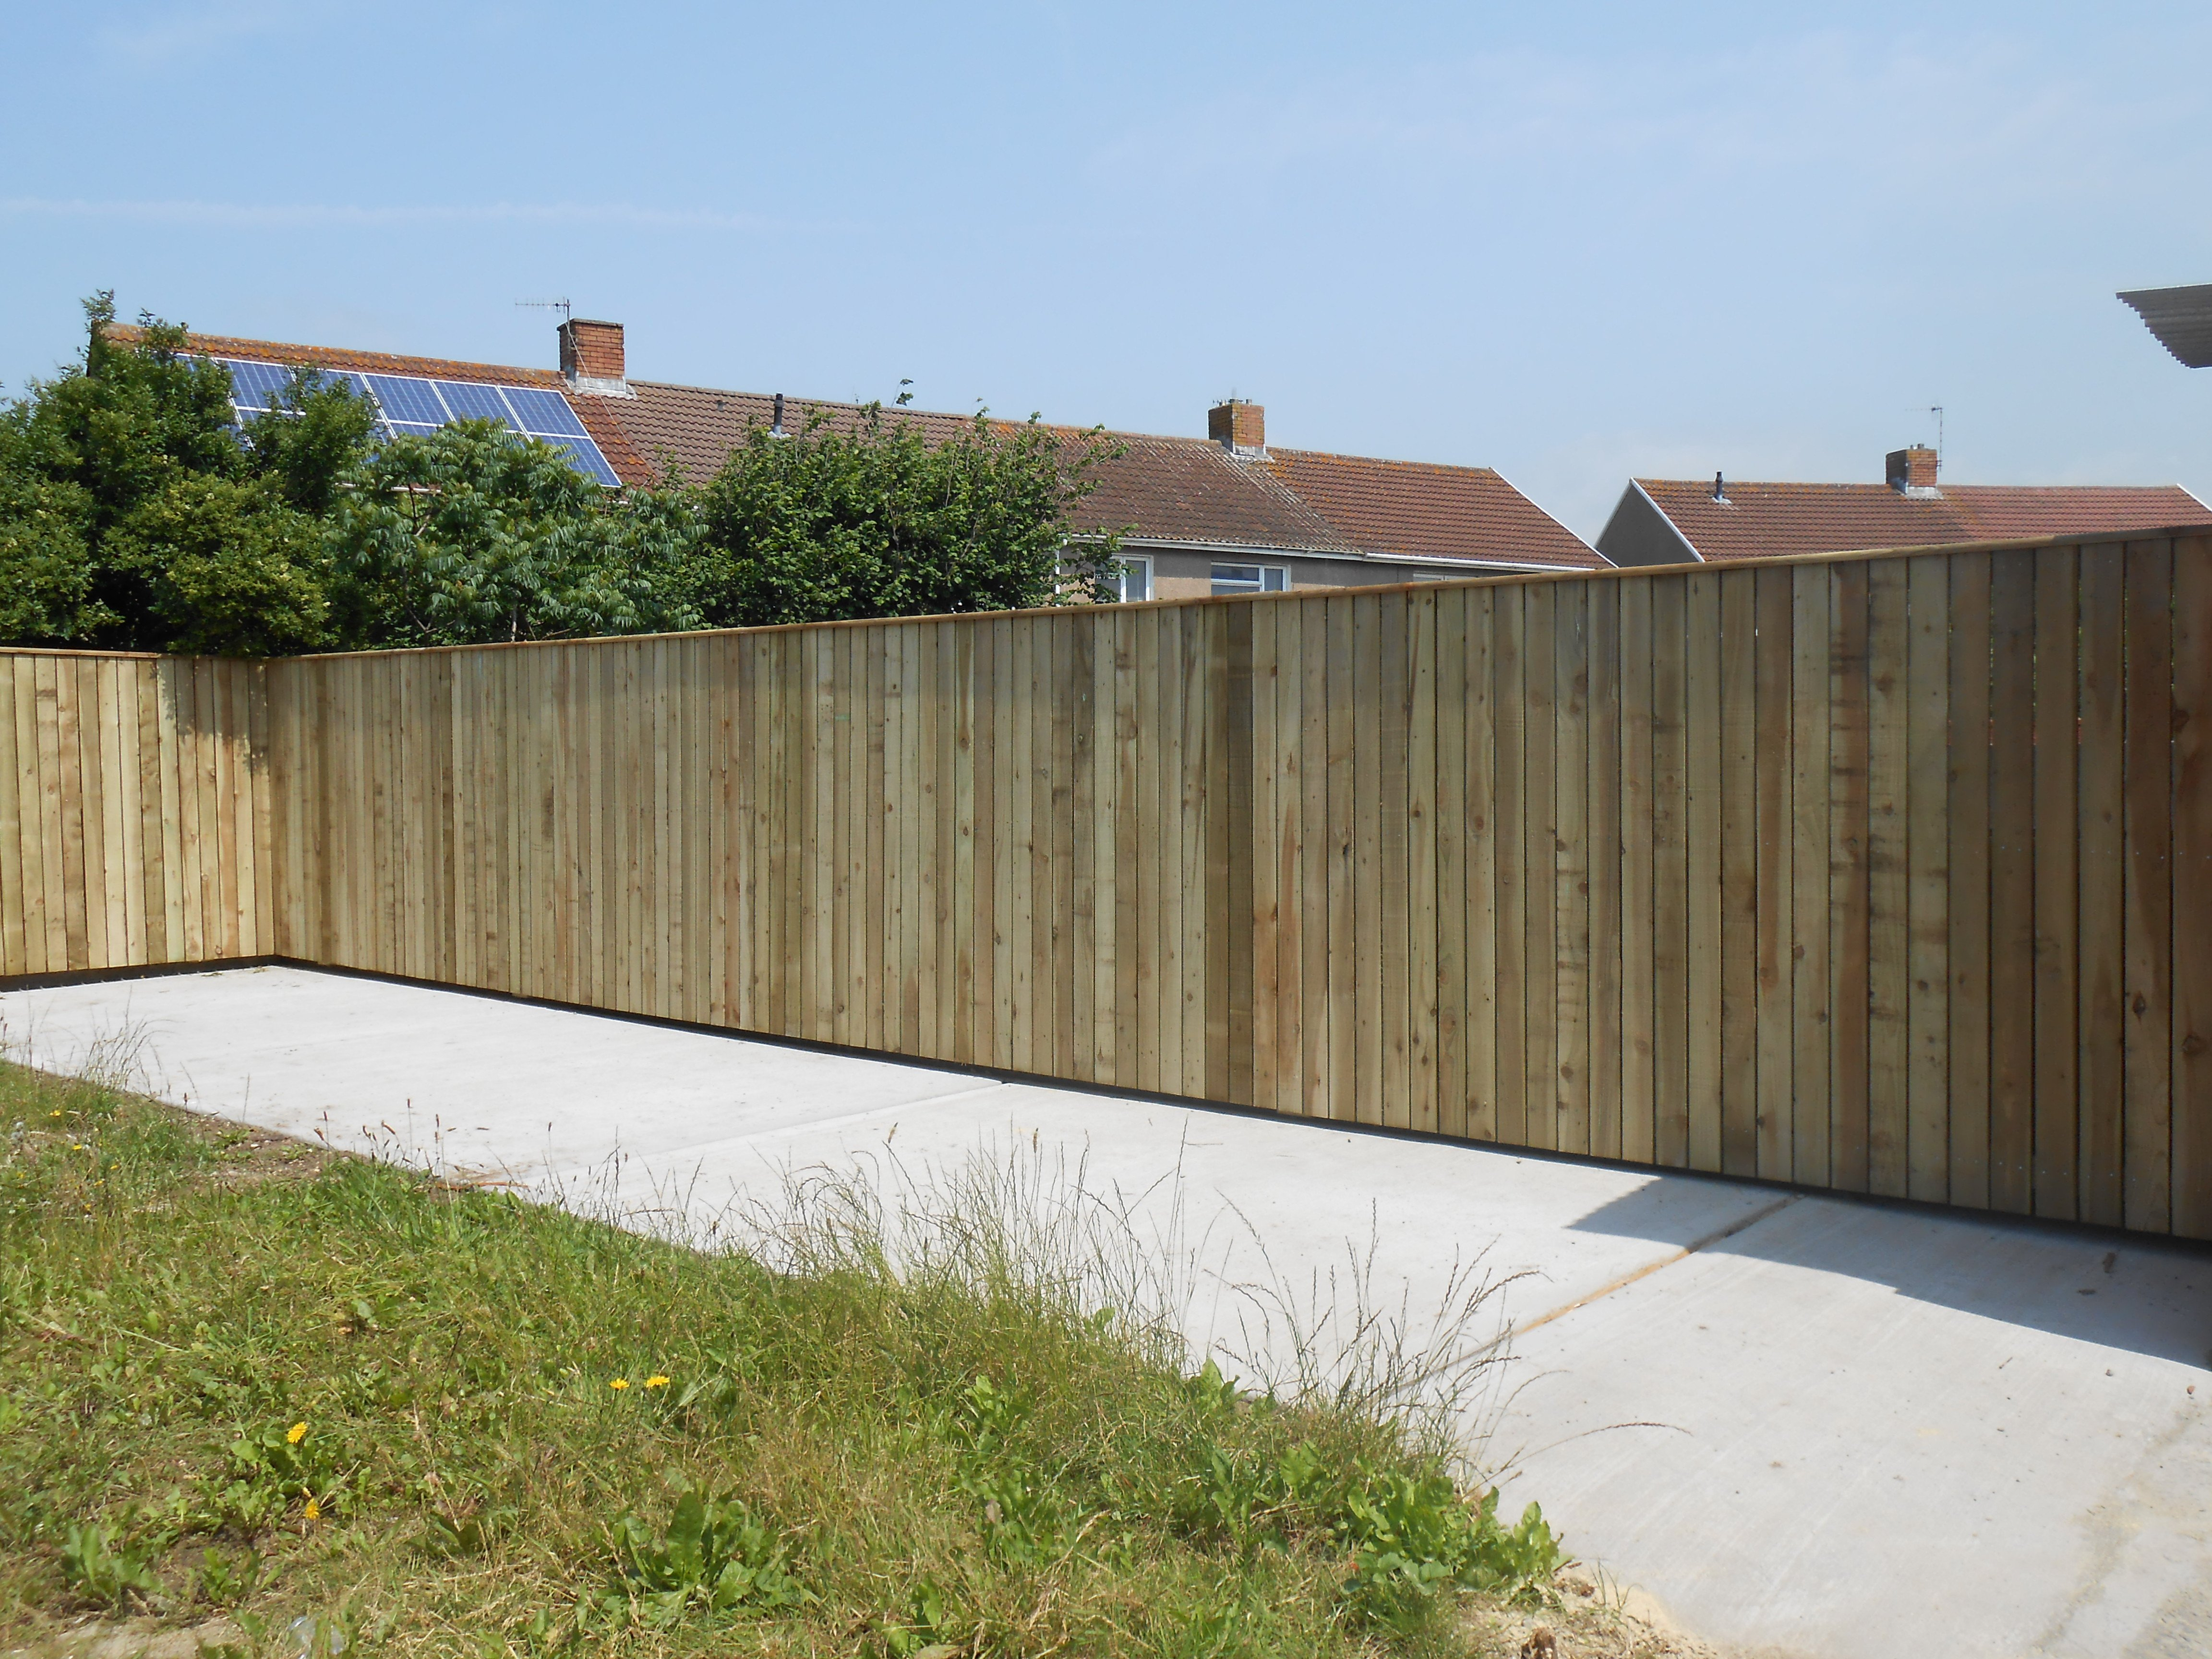 Wooden brown fence